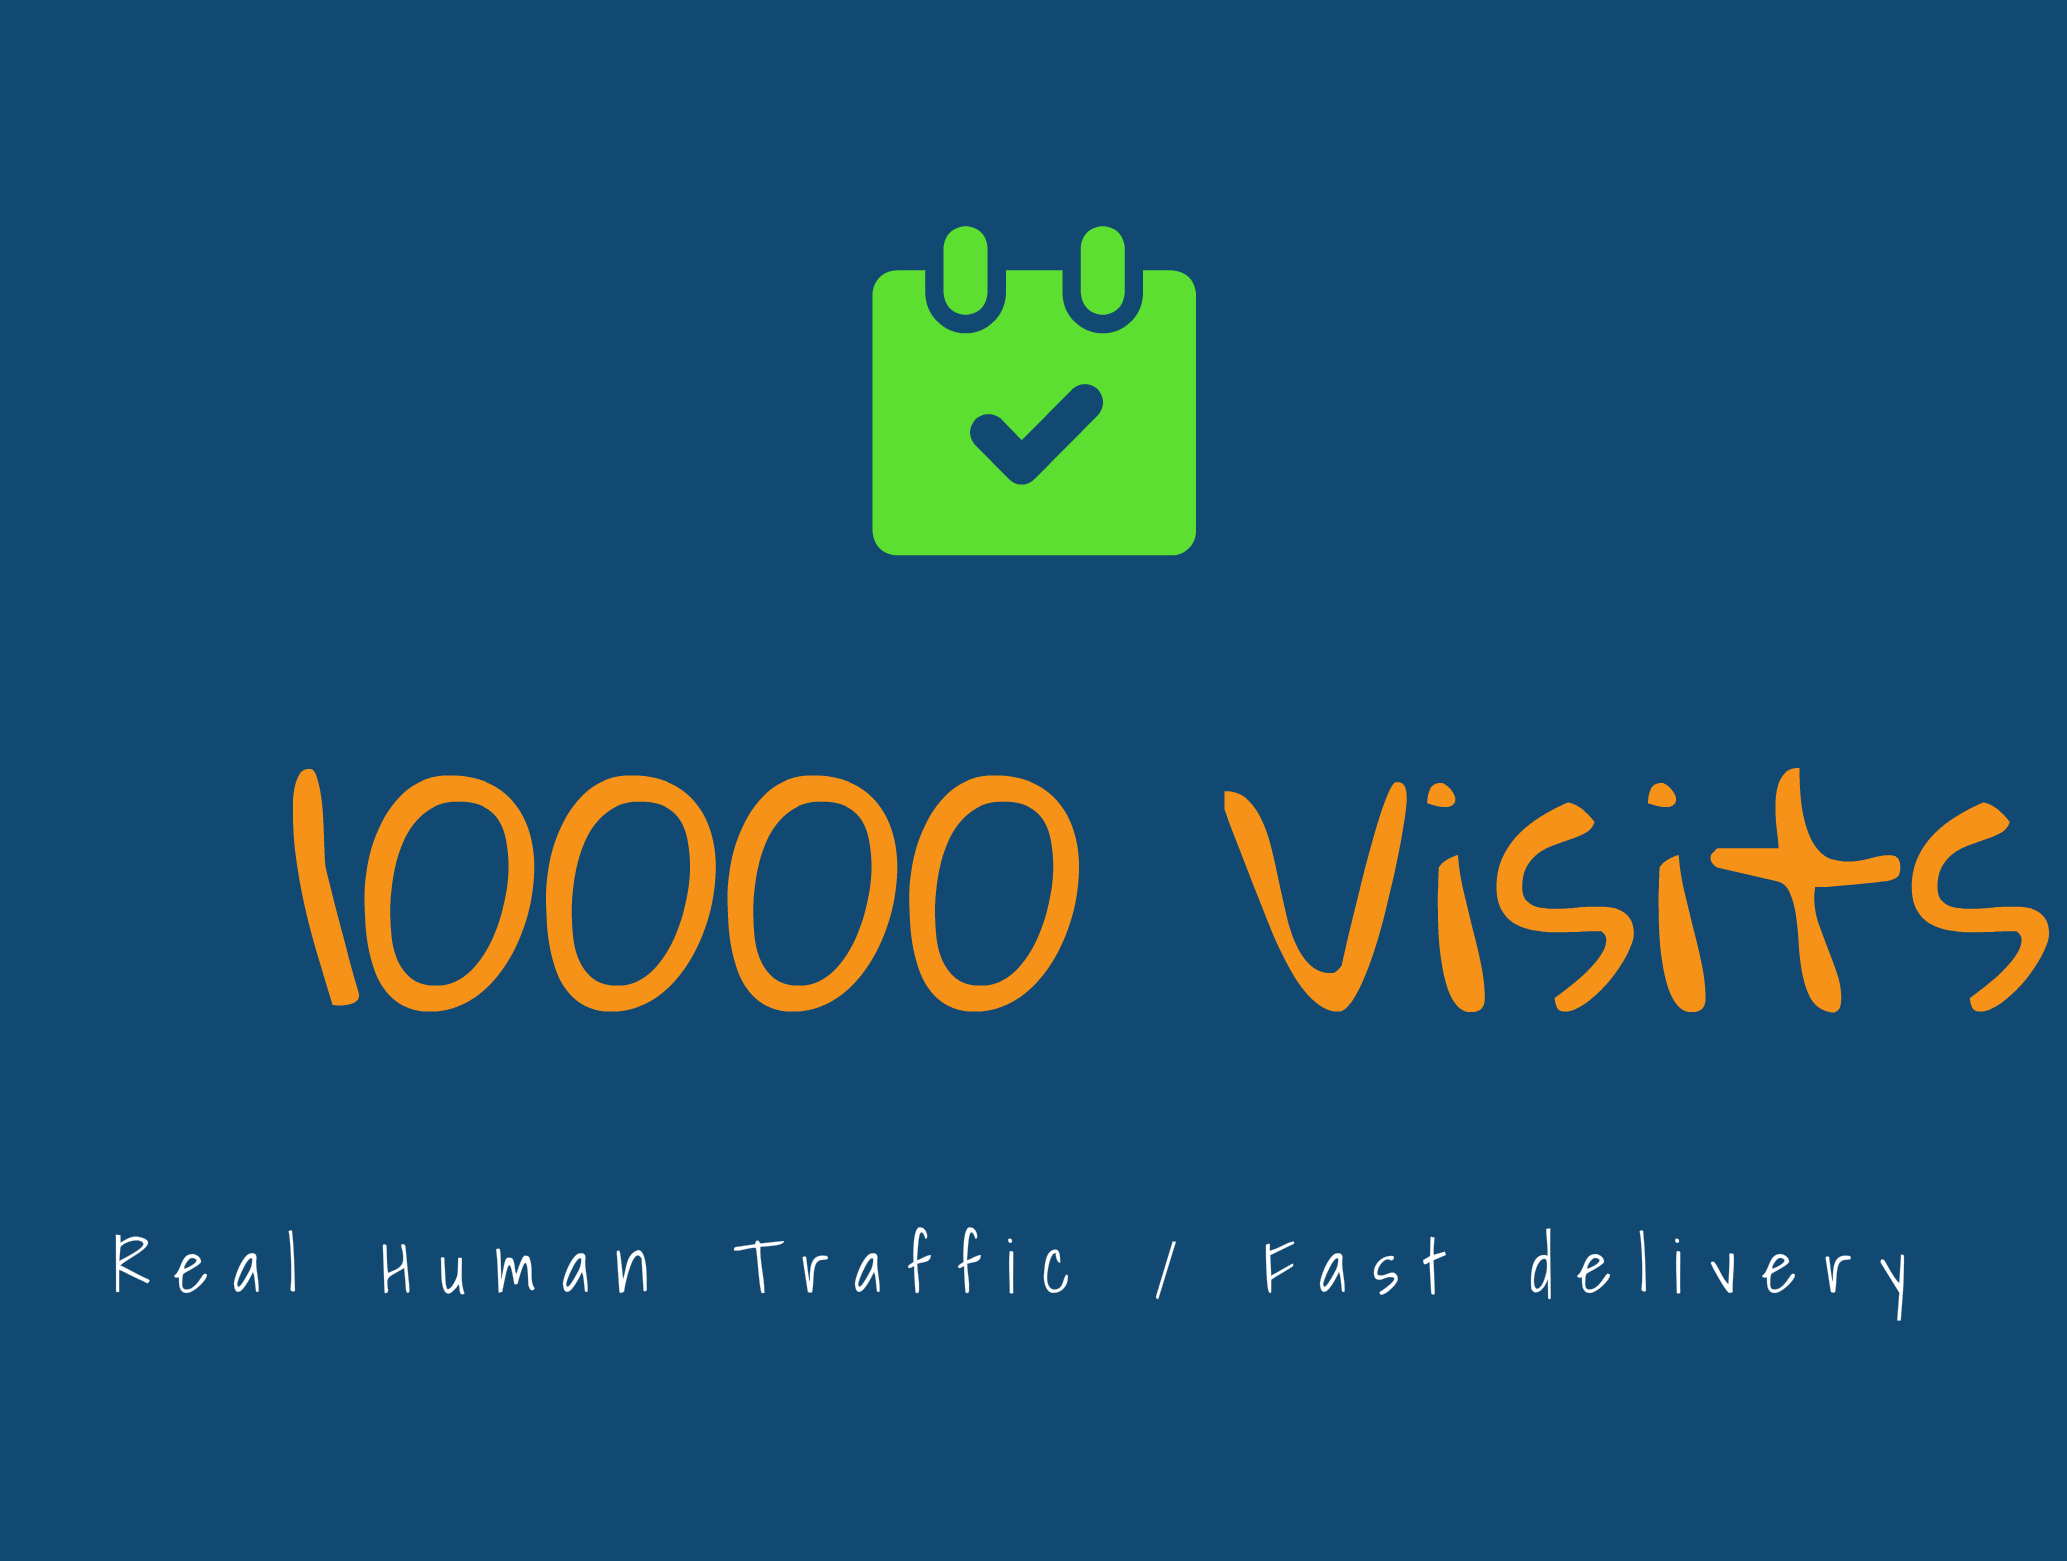 WEBSITE TRAFFIC - 1.000 VISITS